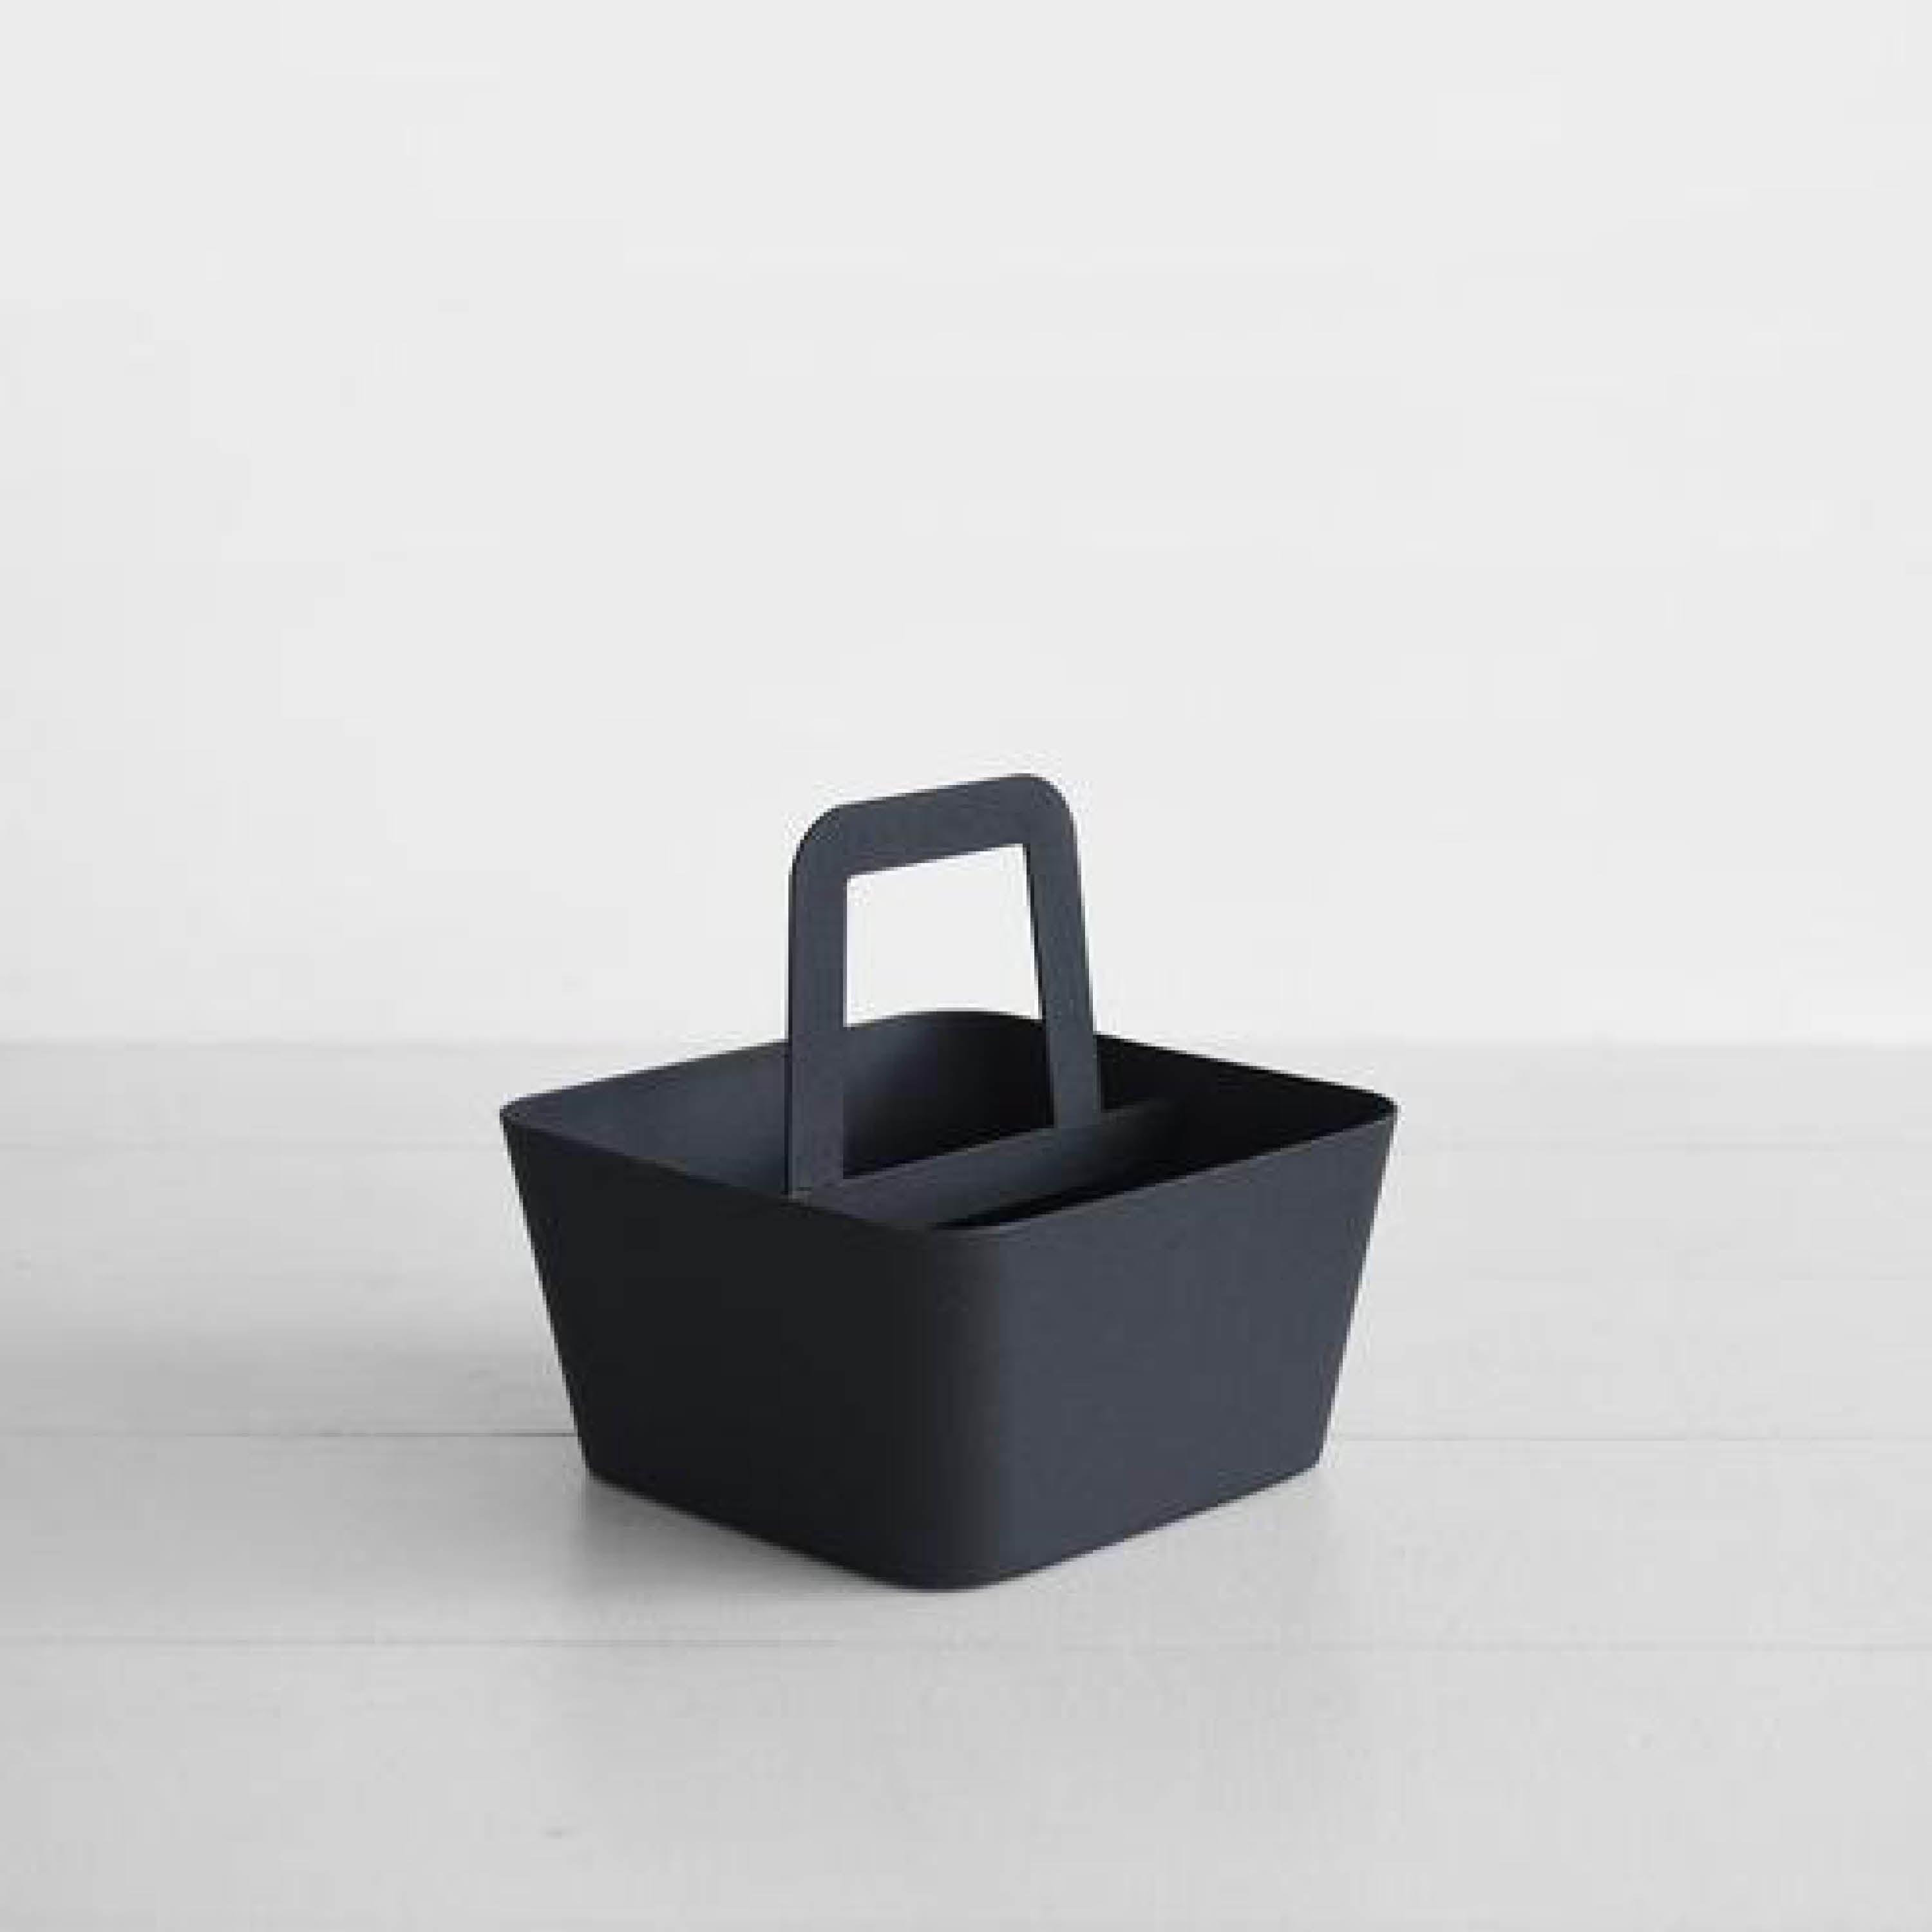 Yamazaki Small Tower Tool Box in Black